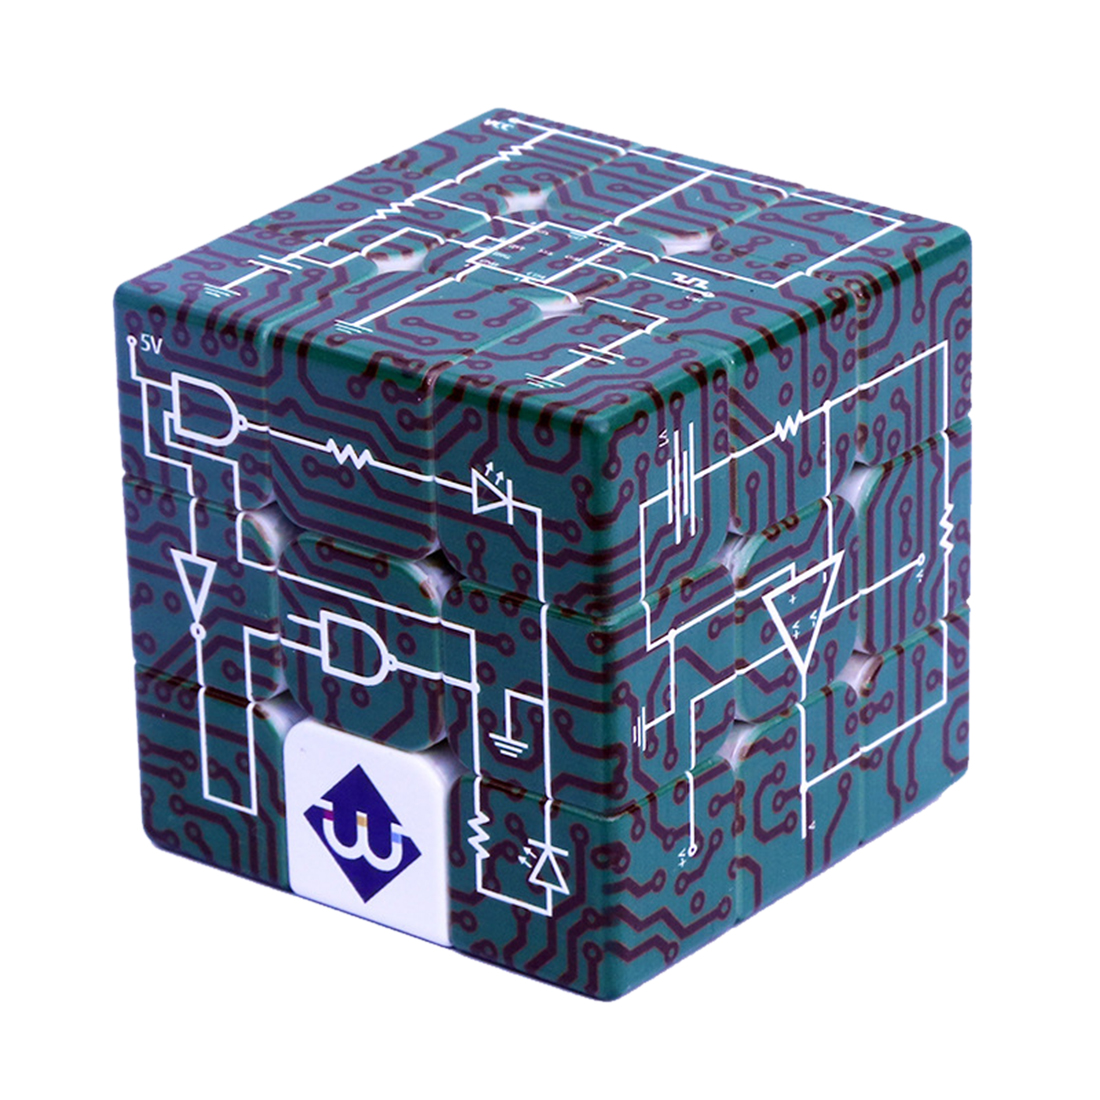 Electric Circuits 3x3x3 Relief Effect Magic Cube IQ Puzzle Cube Game For Blind Man